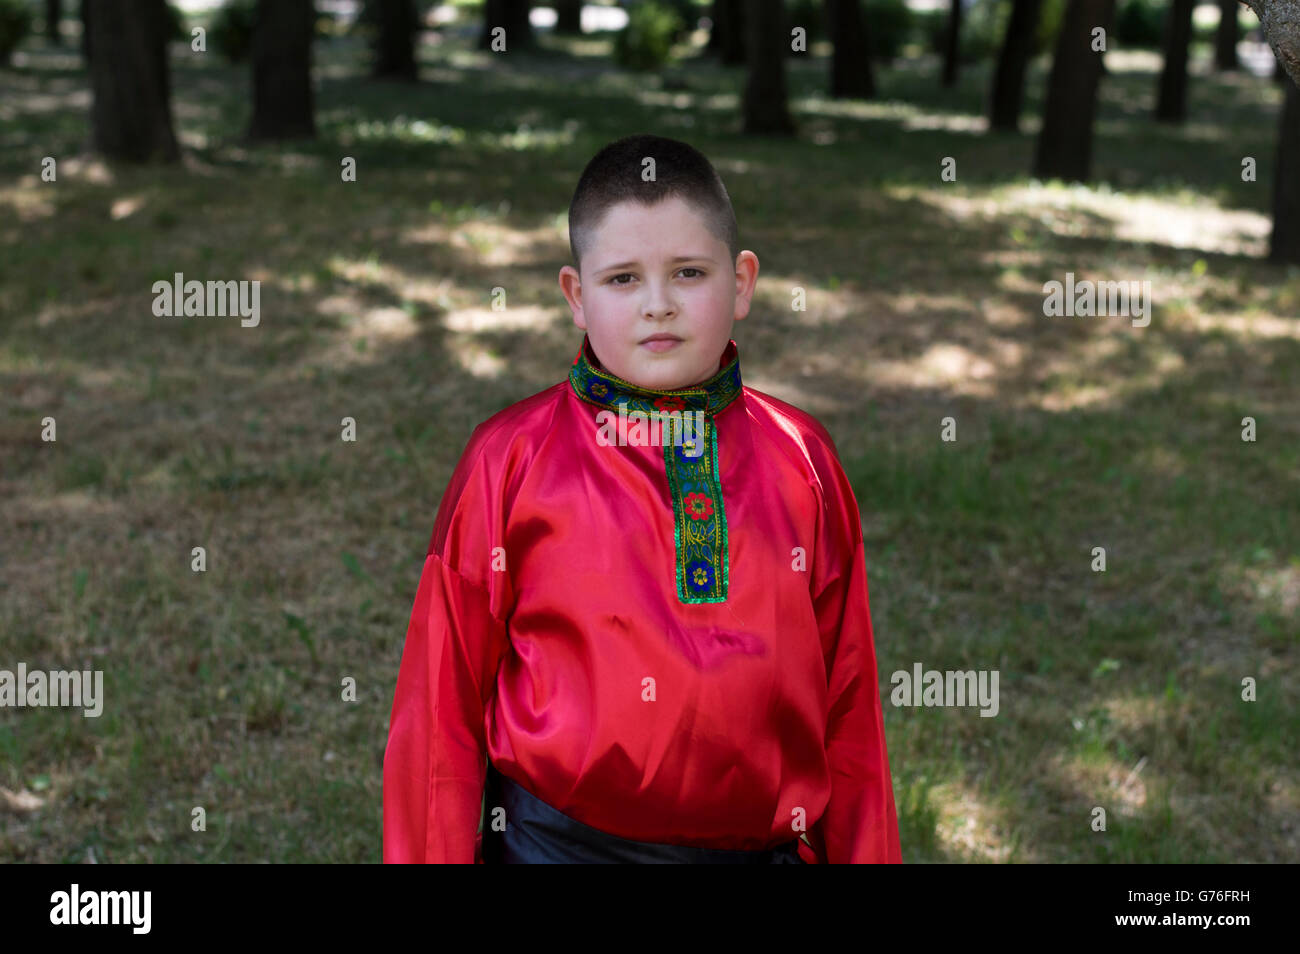 the boy in the Russian shirt against the wood - Stock Image